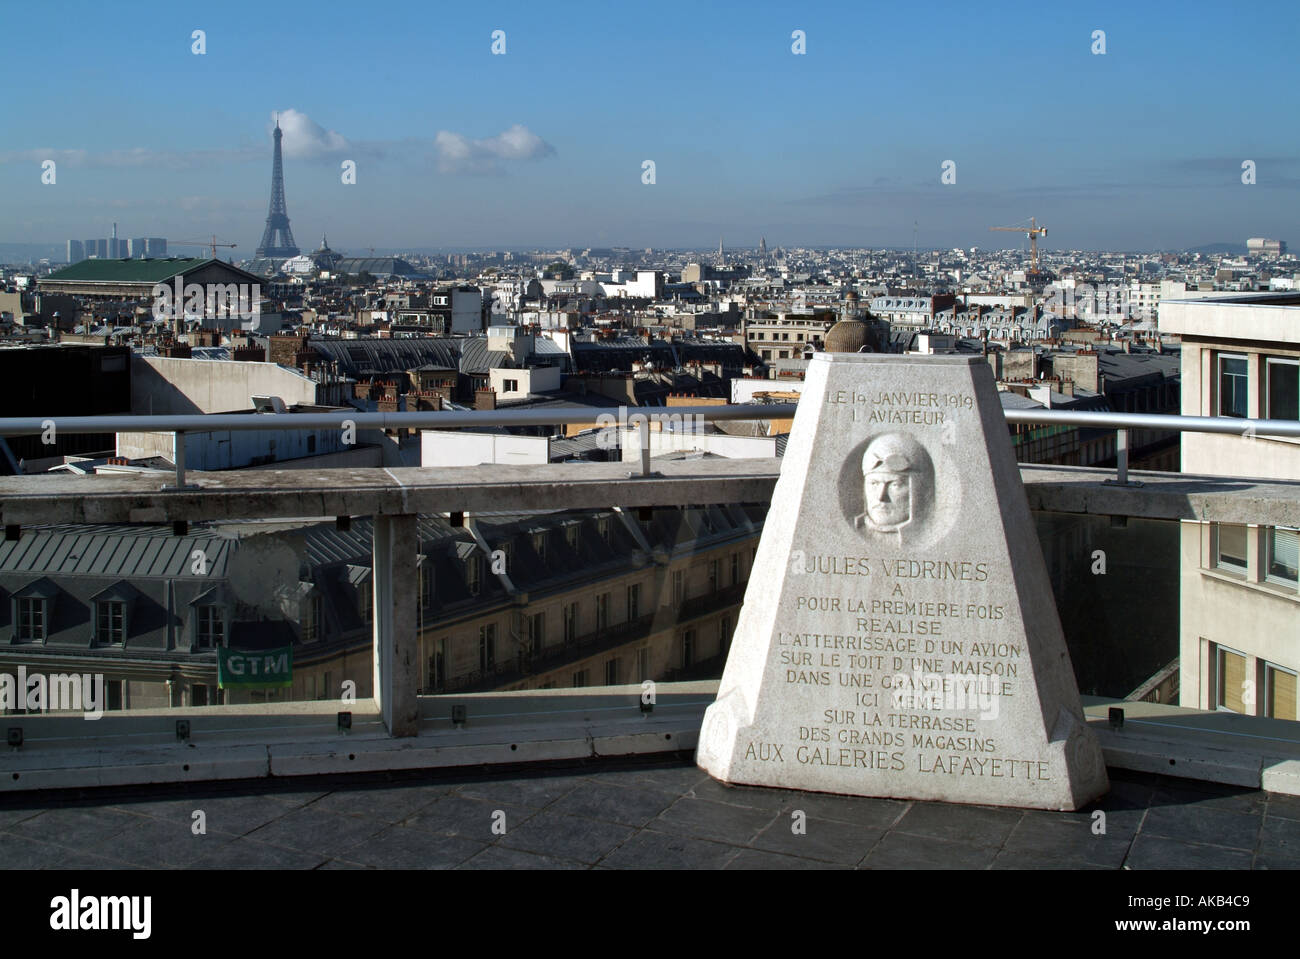 Paris exterior galeries lafayette store rooftop public viewing area memorial to aviator jules vedrines who landed plane on roof